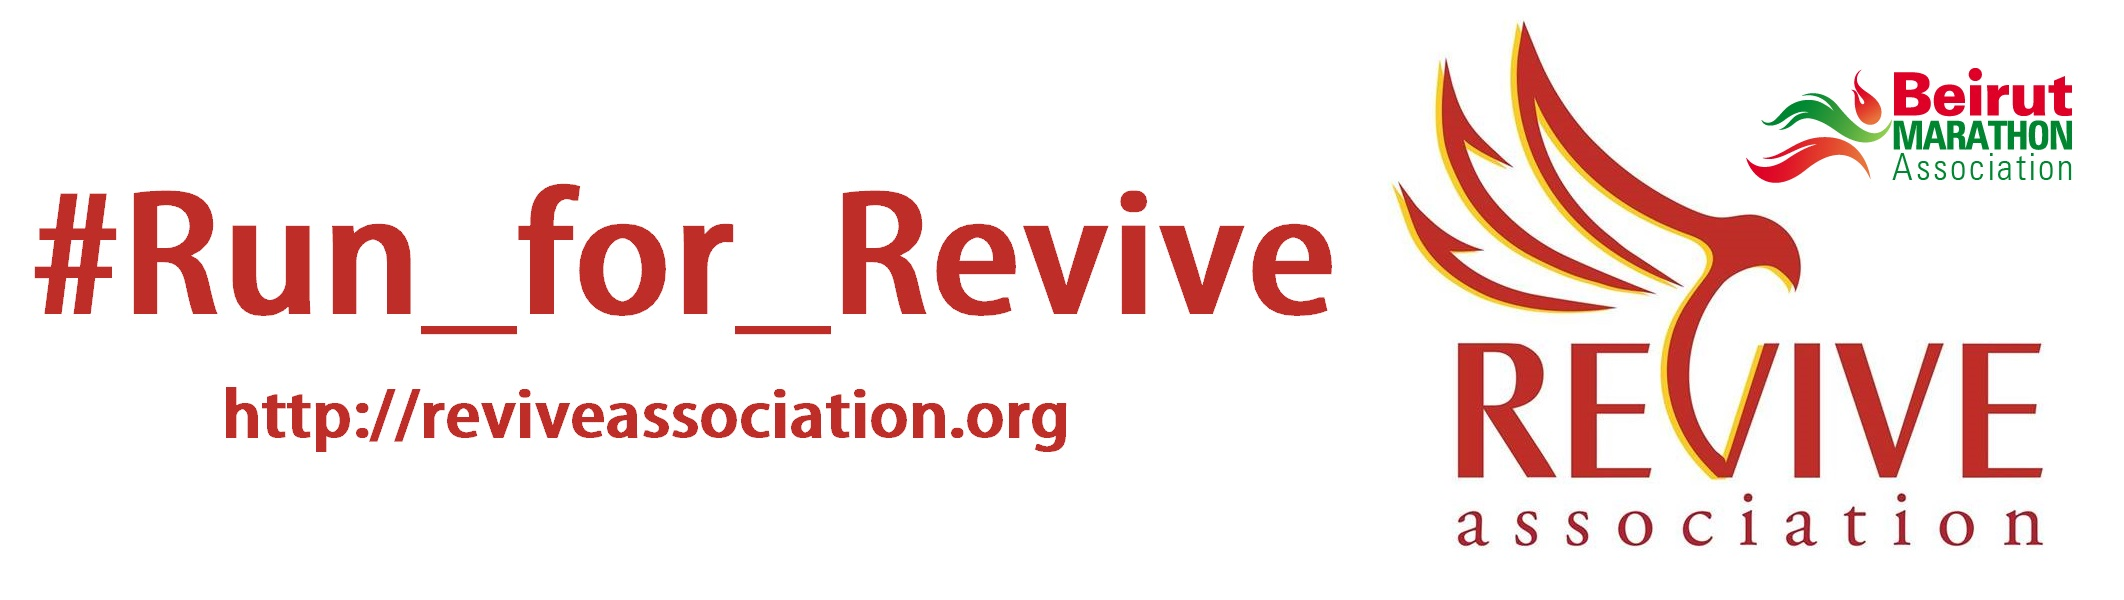 Can't Run for Revive? Here's what you can do instead